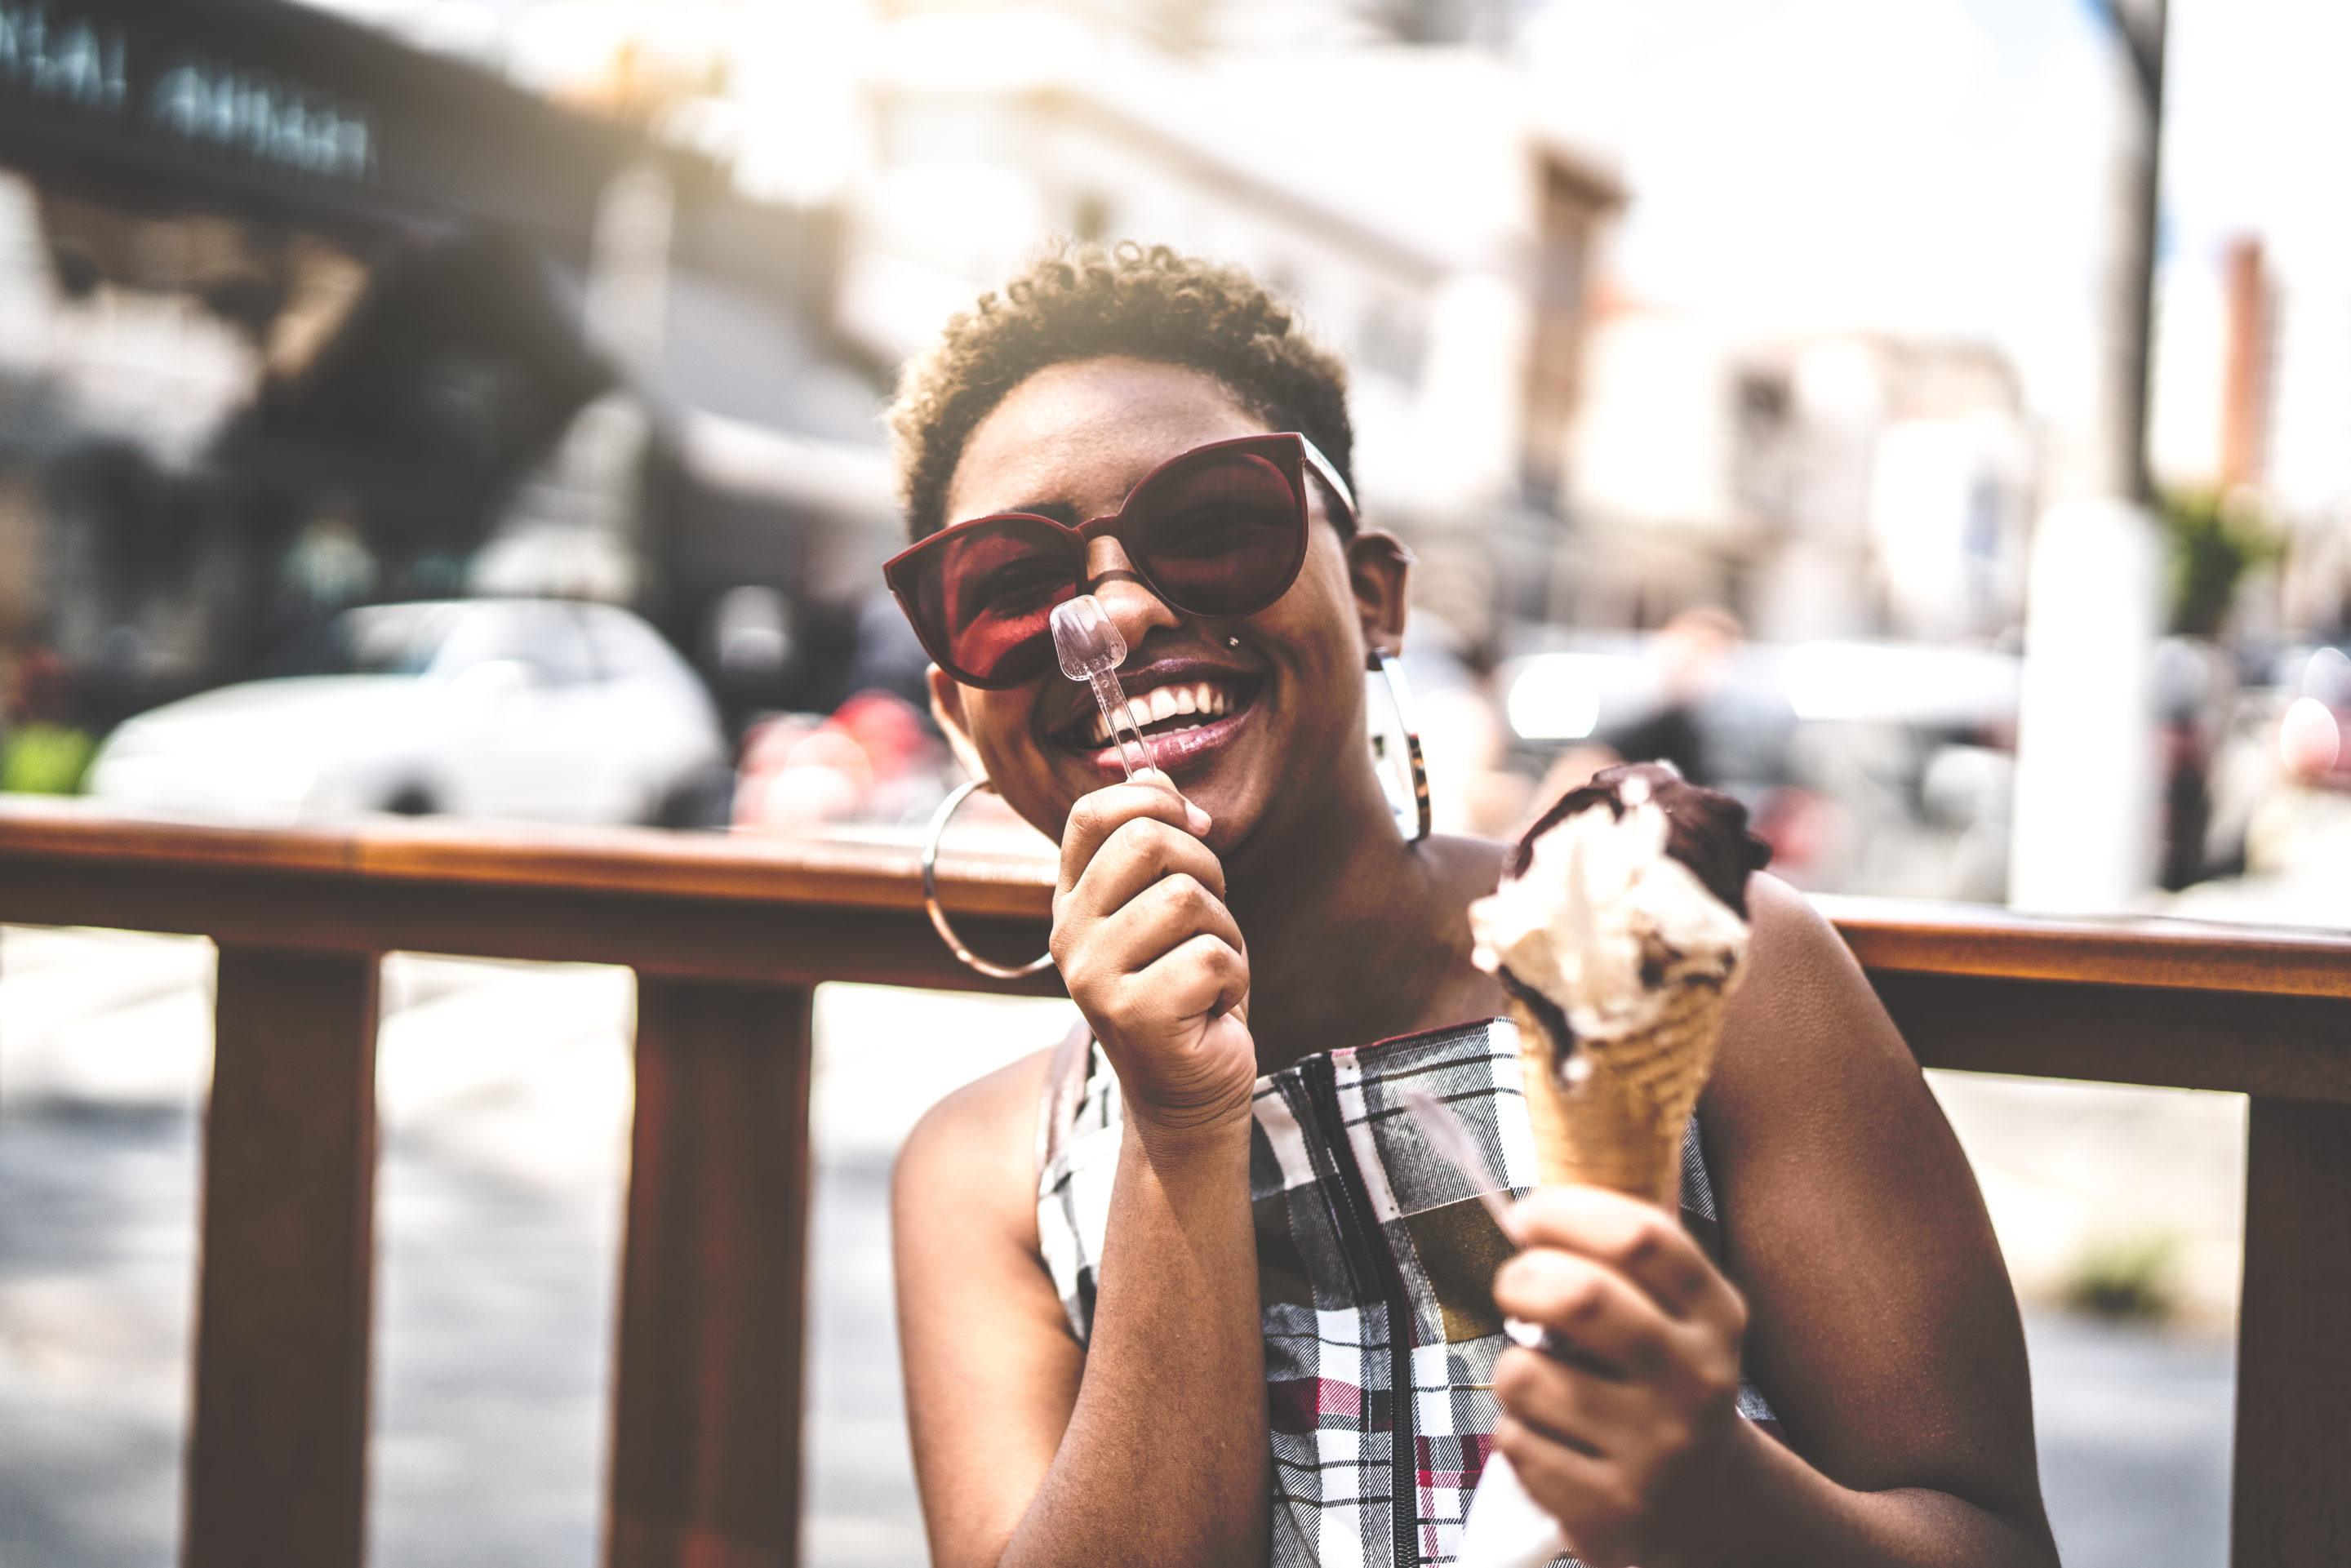 Find sweet relief from the NYC heat by treating yourself to the city's top vegan ice cream